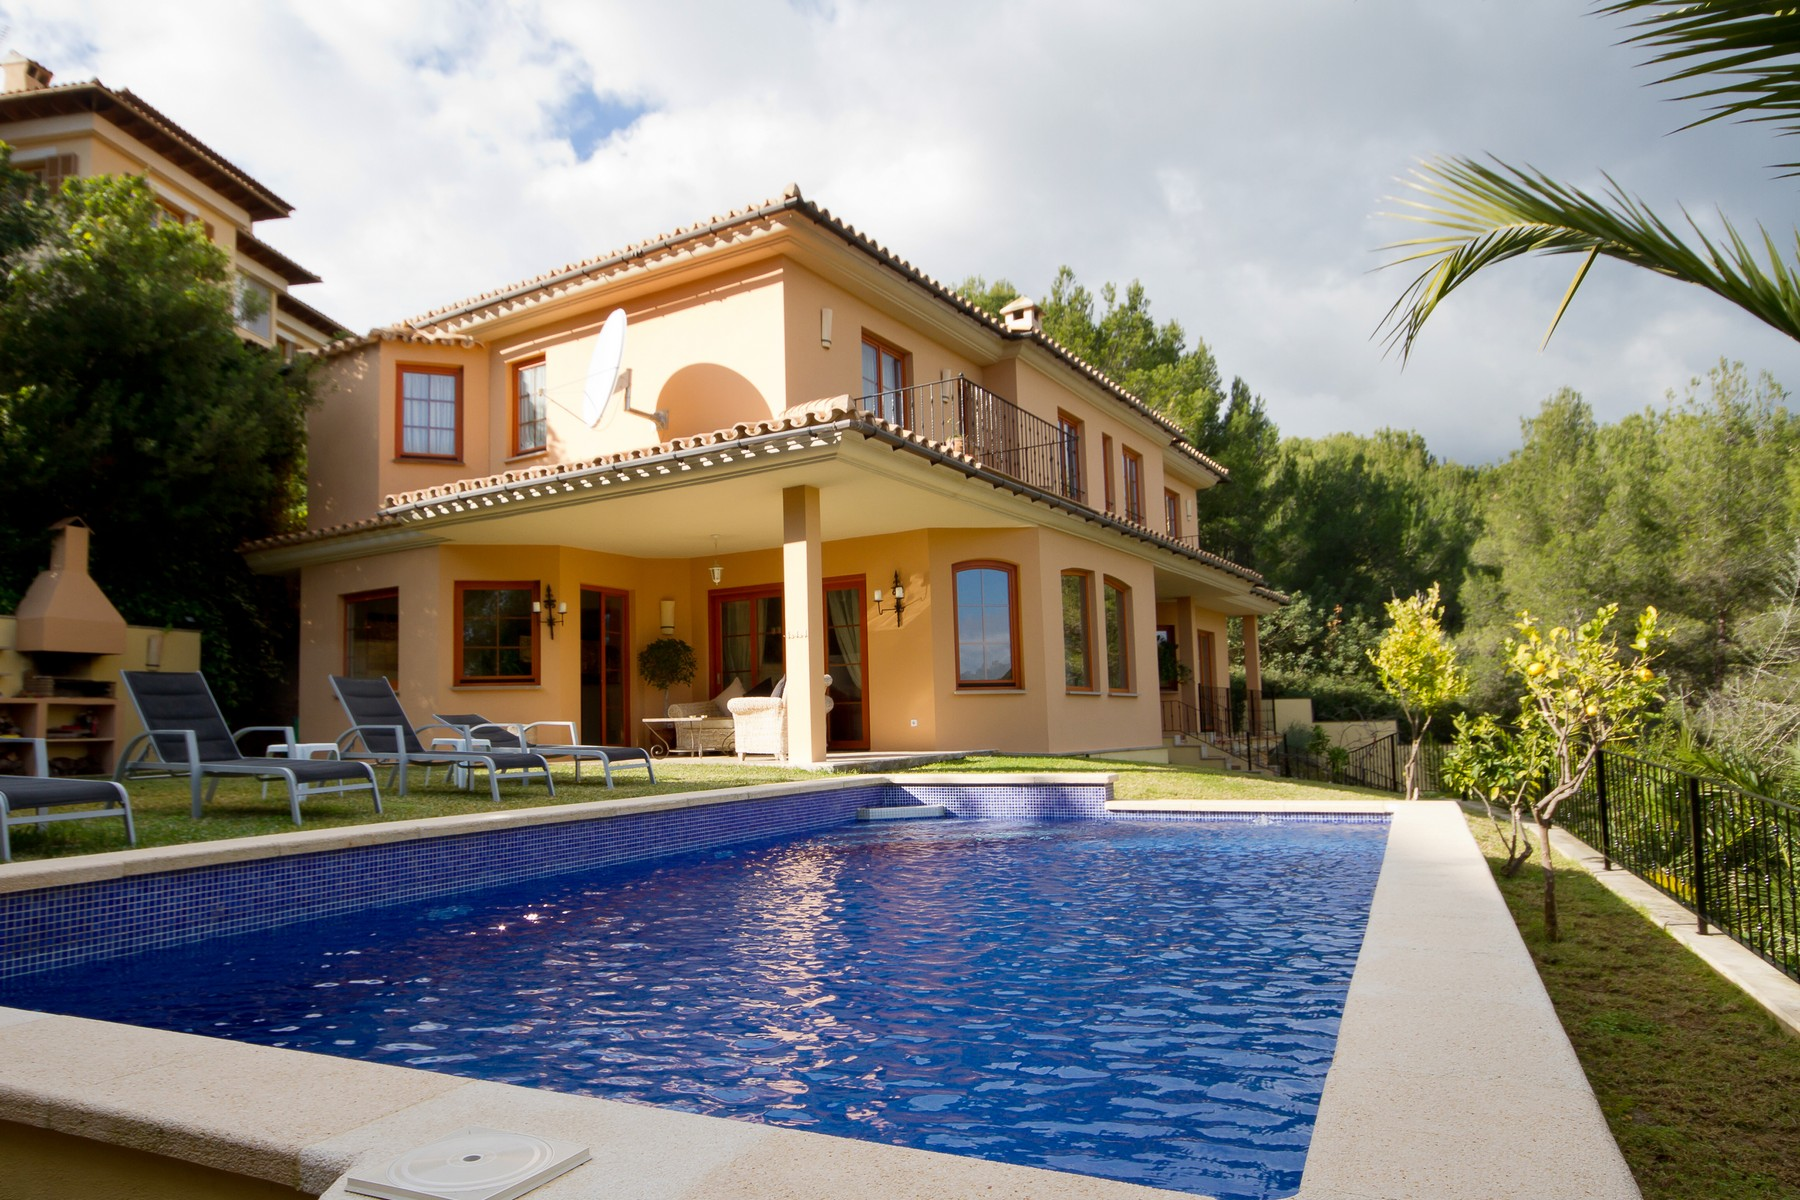 Single Family Home for Rent at Luxury high quality villa in Bendinat Bendinat, Mallorca Spain